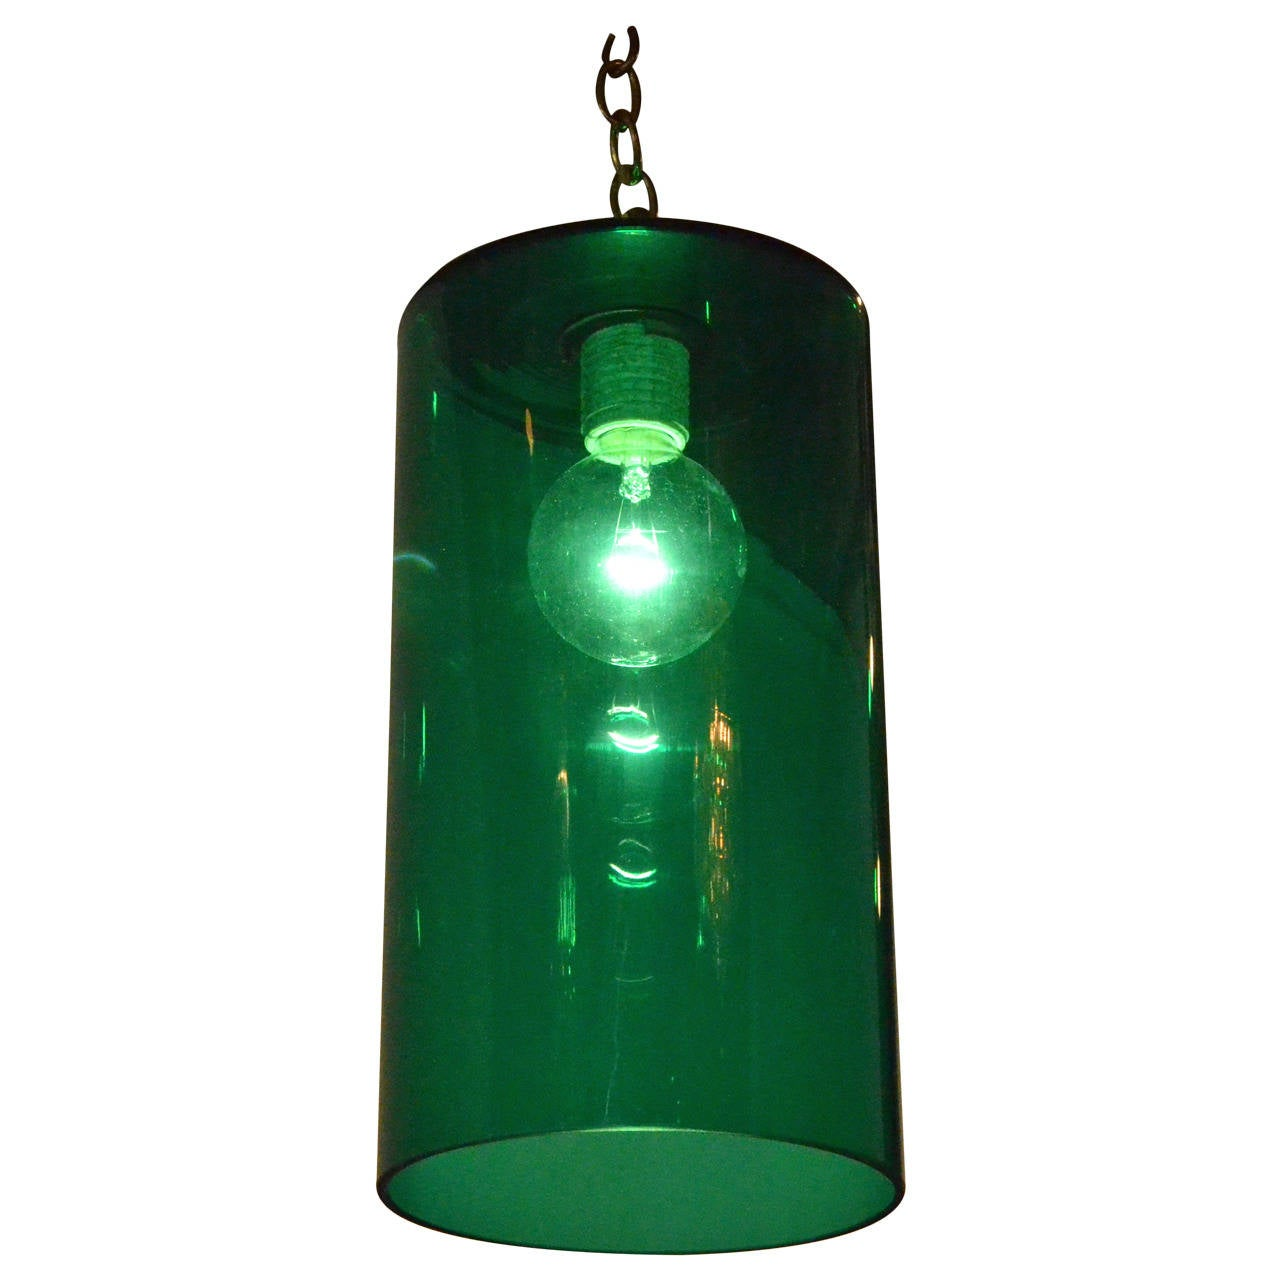 modern emerald green murano glass lighting pendant for sale at 1stdibs. Black Bedroom Furniture Sets. Home Design Ideas